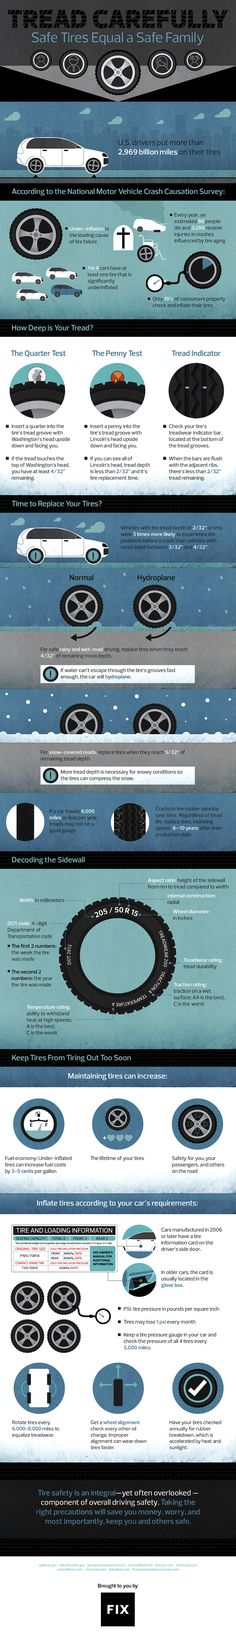 Your vehicle's tires not only hold the weight of your car, but also the safety of you and your family. This graphic gives you all the information you need for caring for your tires and knowing when it's time to replace them.